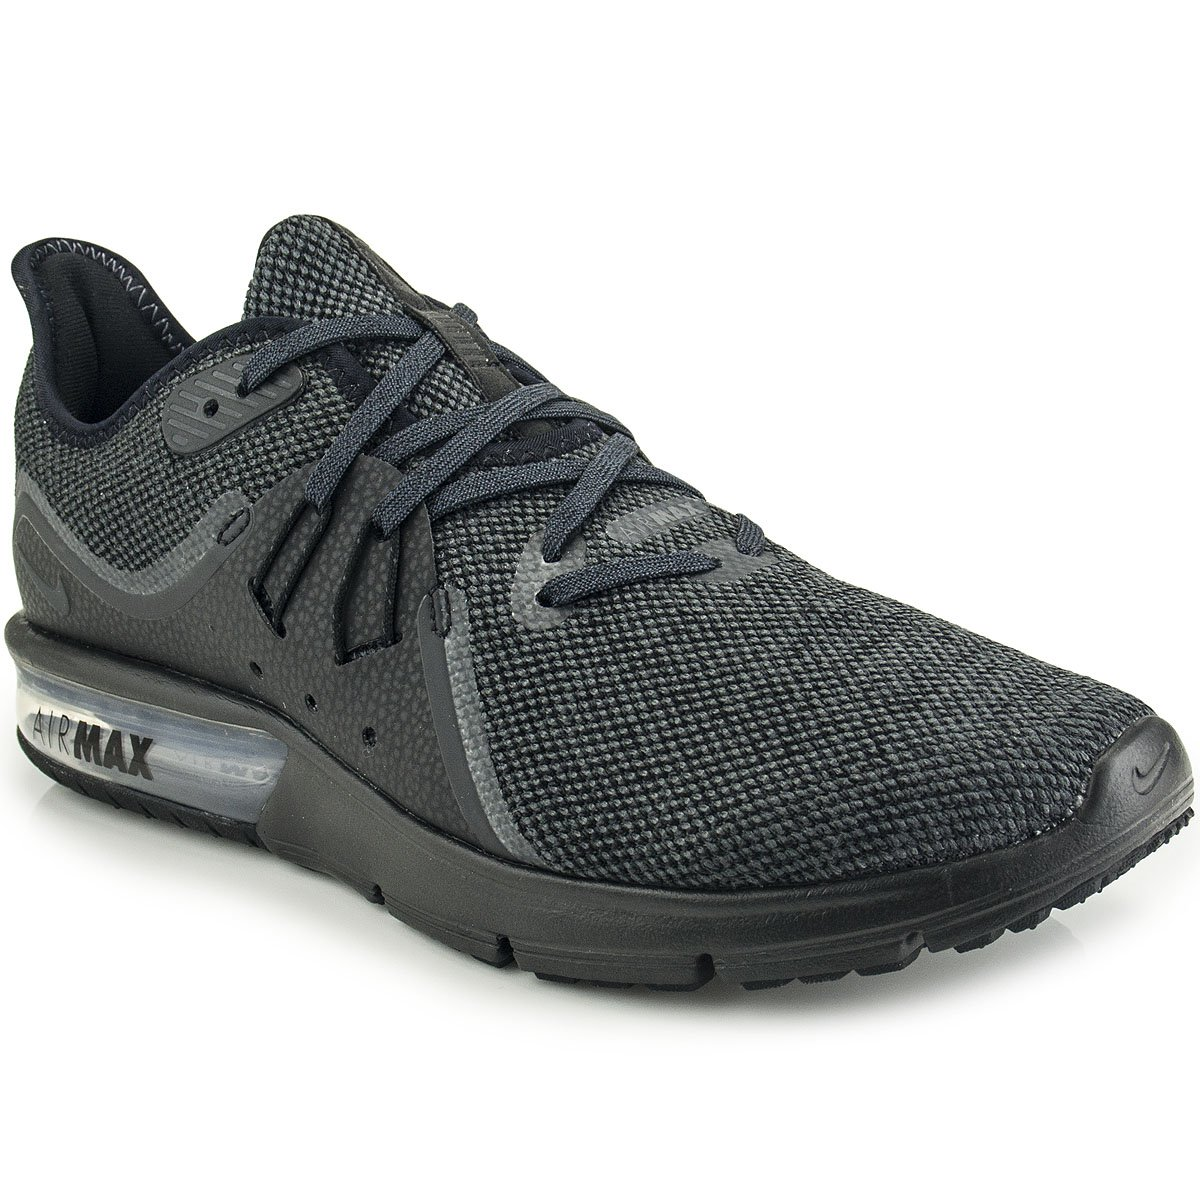 a37e80be8 Tênis Nike Air Max Sequent 3 Masculino | Running | MaxTennis